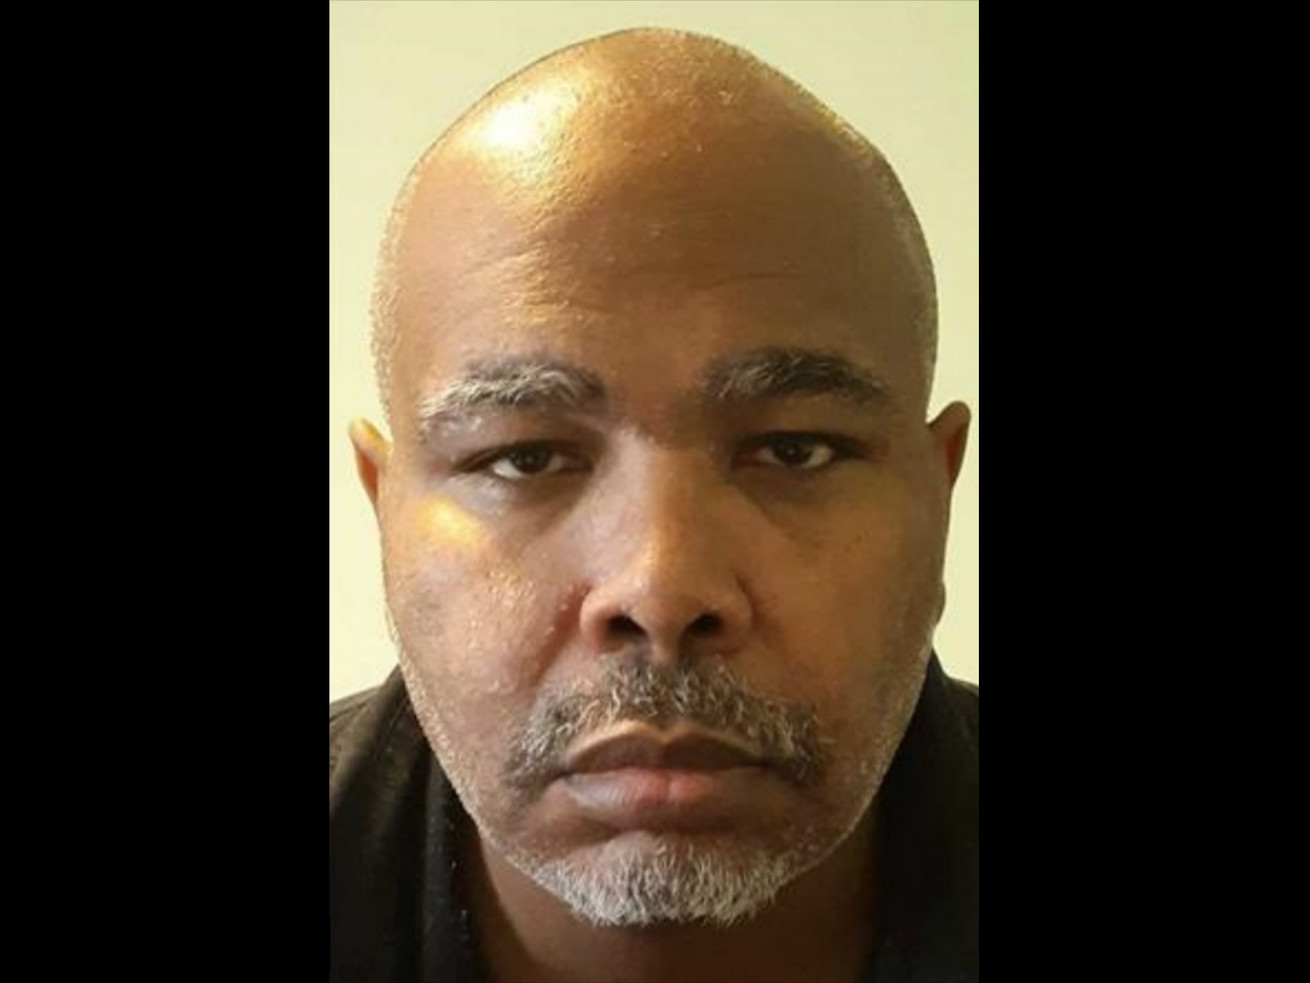 Man, 48, missing from West Pullman